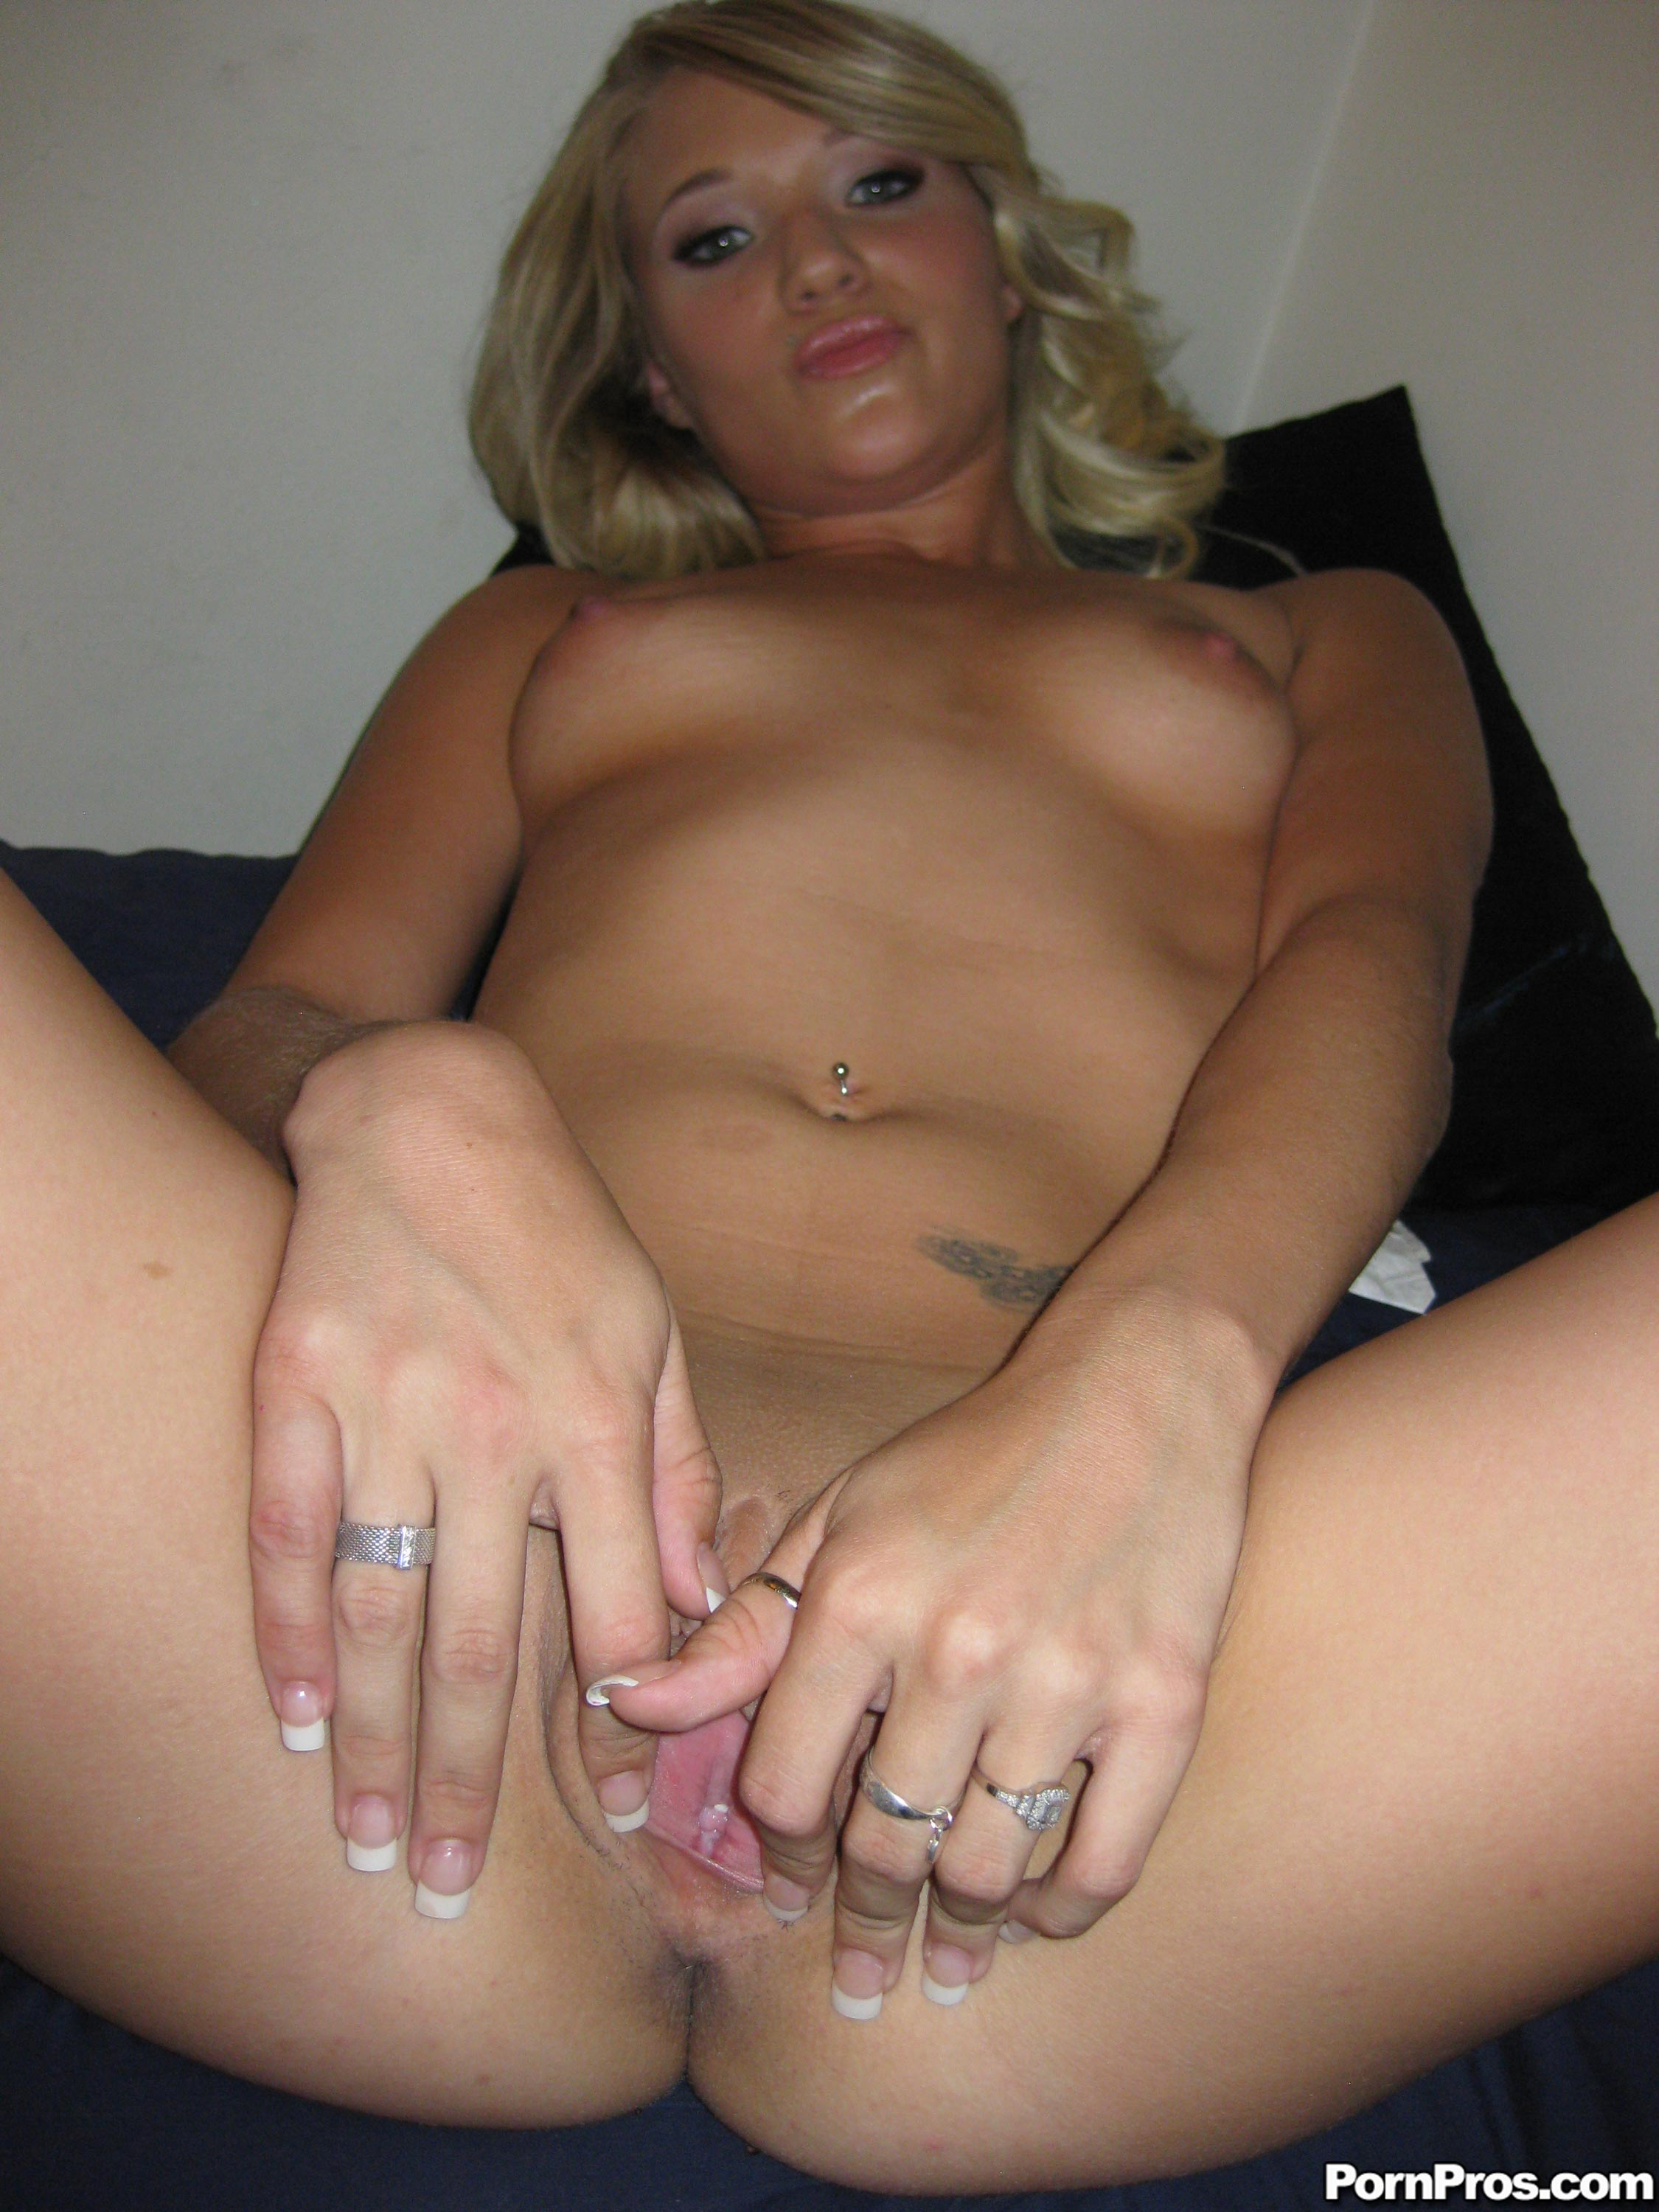 free sex picture ex wife girlfriend